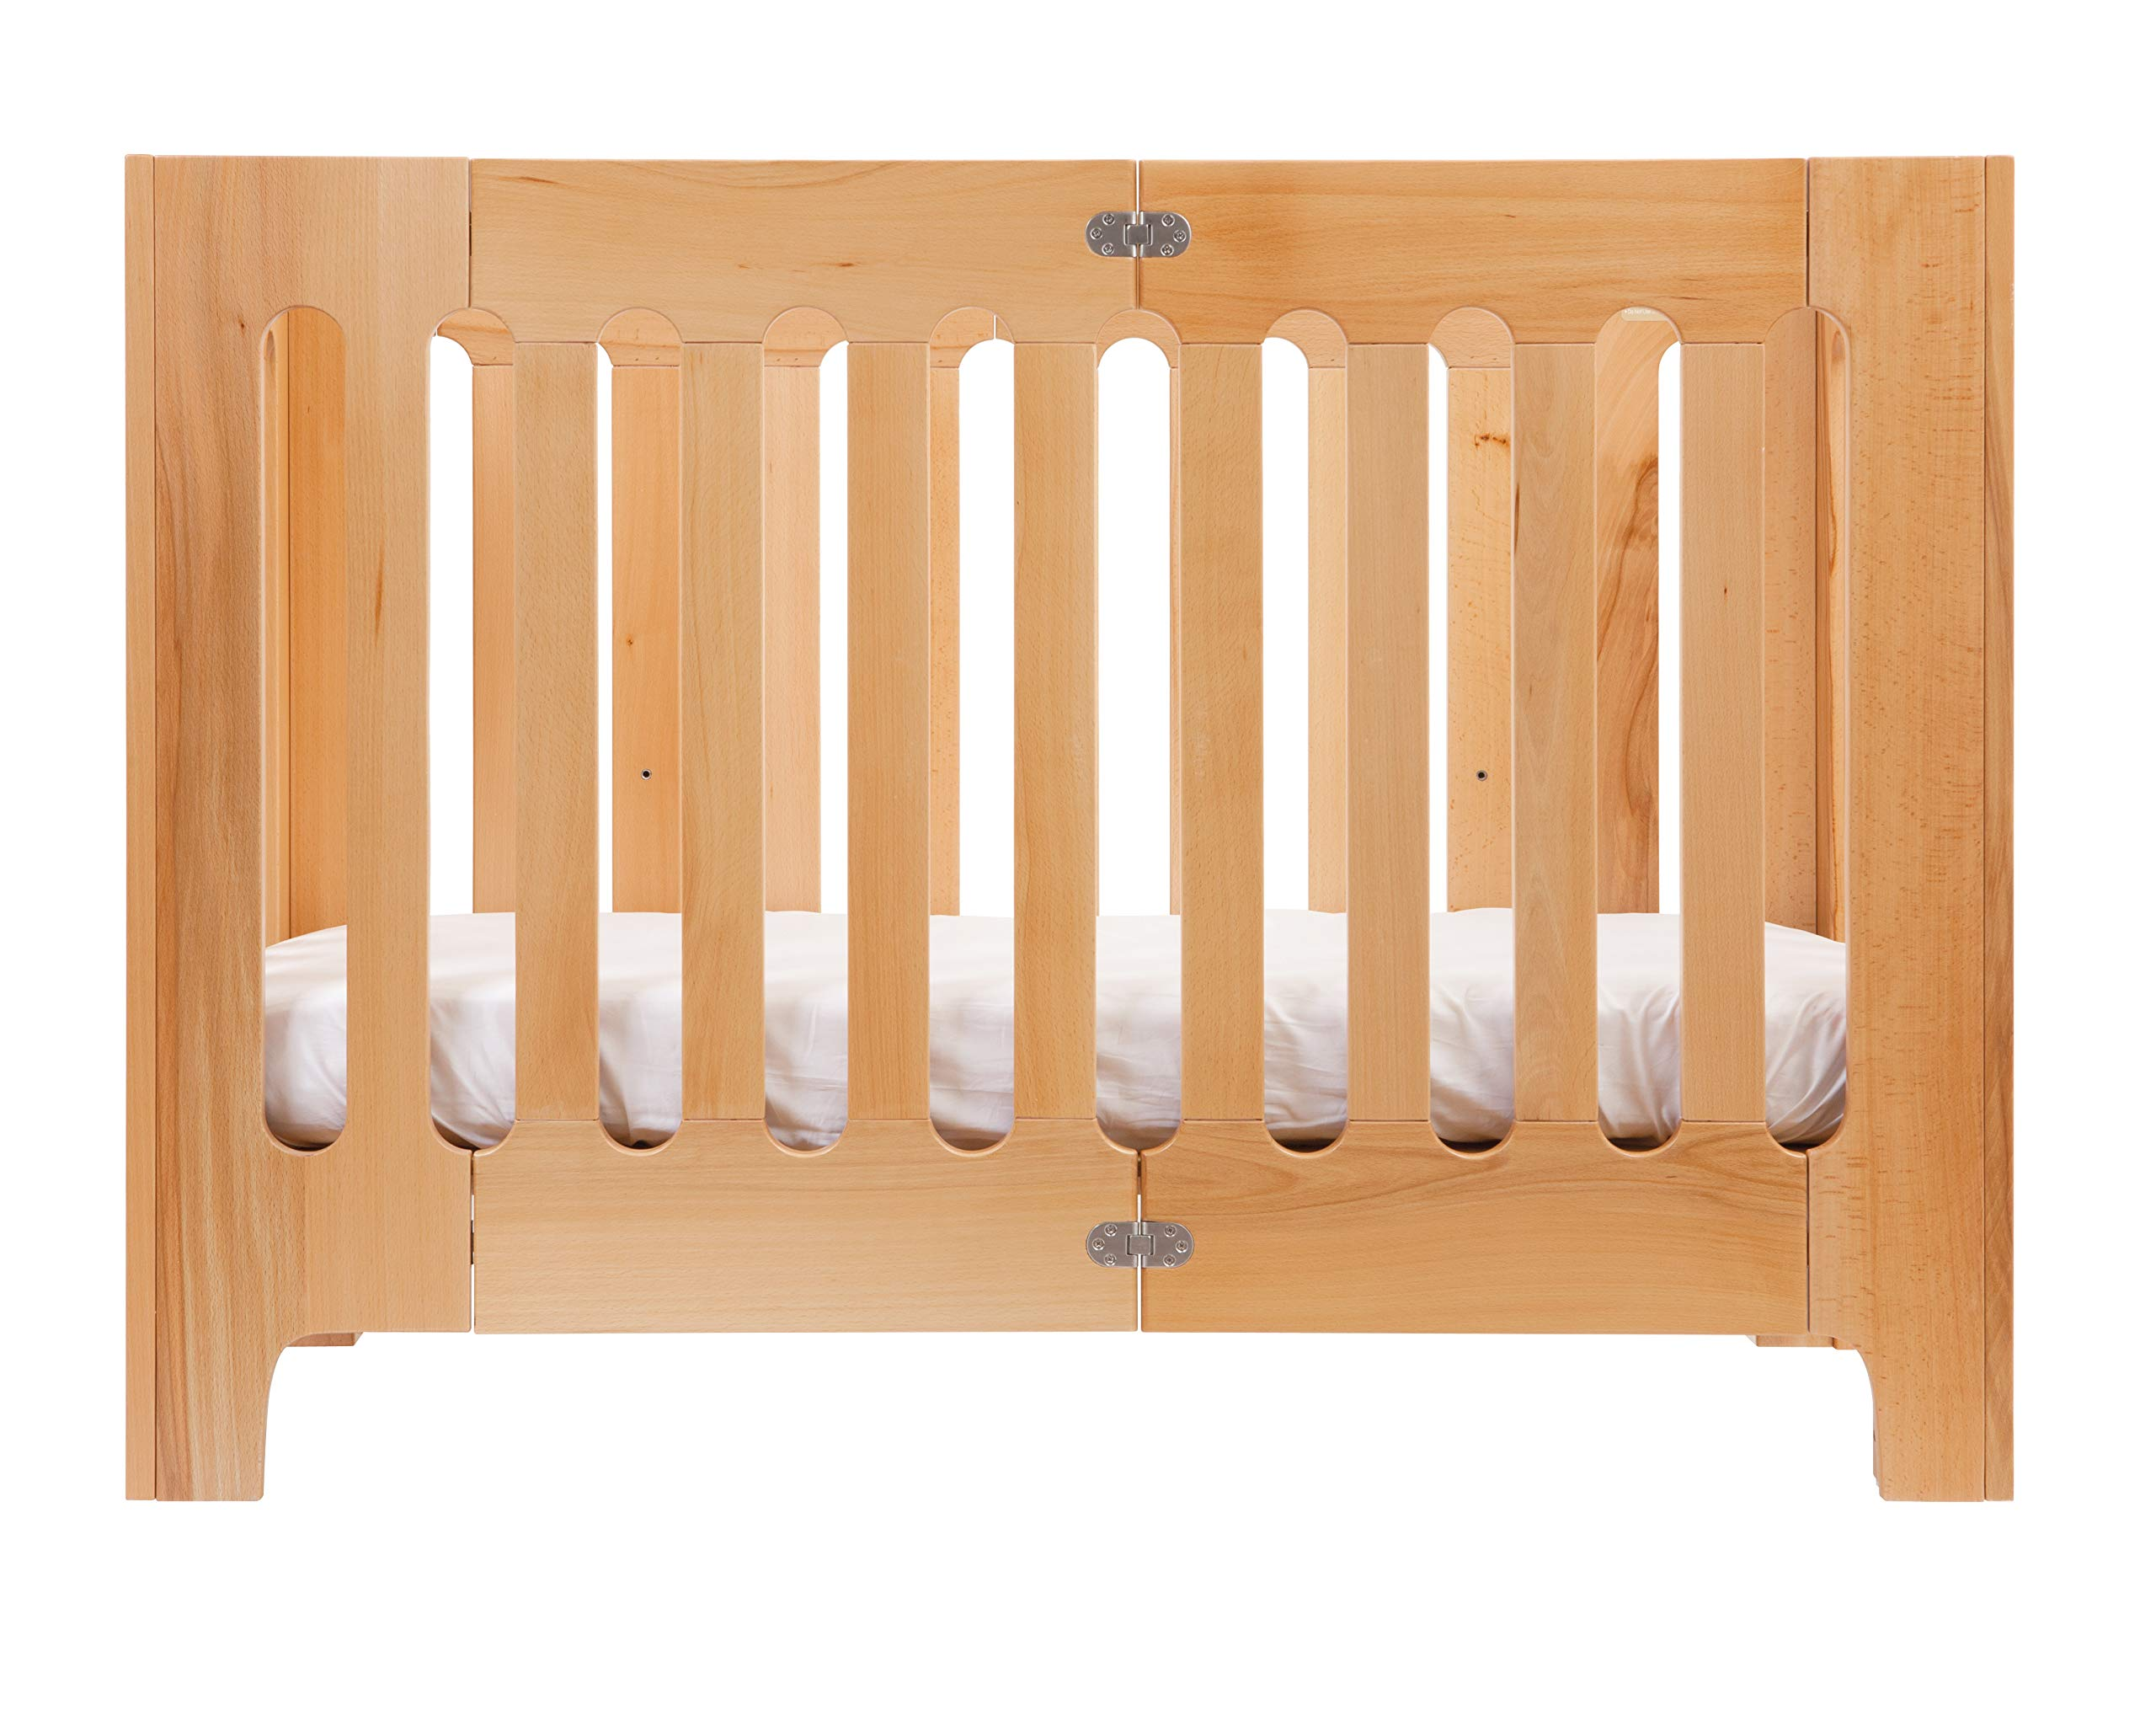 Bloom Alma Papa Baby Crib/Cot (Convertible, Sold Wood, 0-4 Years) (Natural)  Alma Papa is suitable from newborn to 4 years, beautiful, modern solid wood crib with 2 mattress heights allow use as a bassinet & full-size crib patented compact-fold construction for easy storage & transport (durable storage bag available separately) open slats on all four sides maximize all important air-flow 1